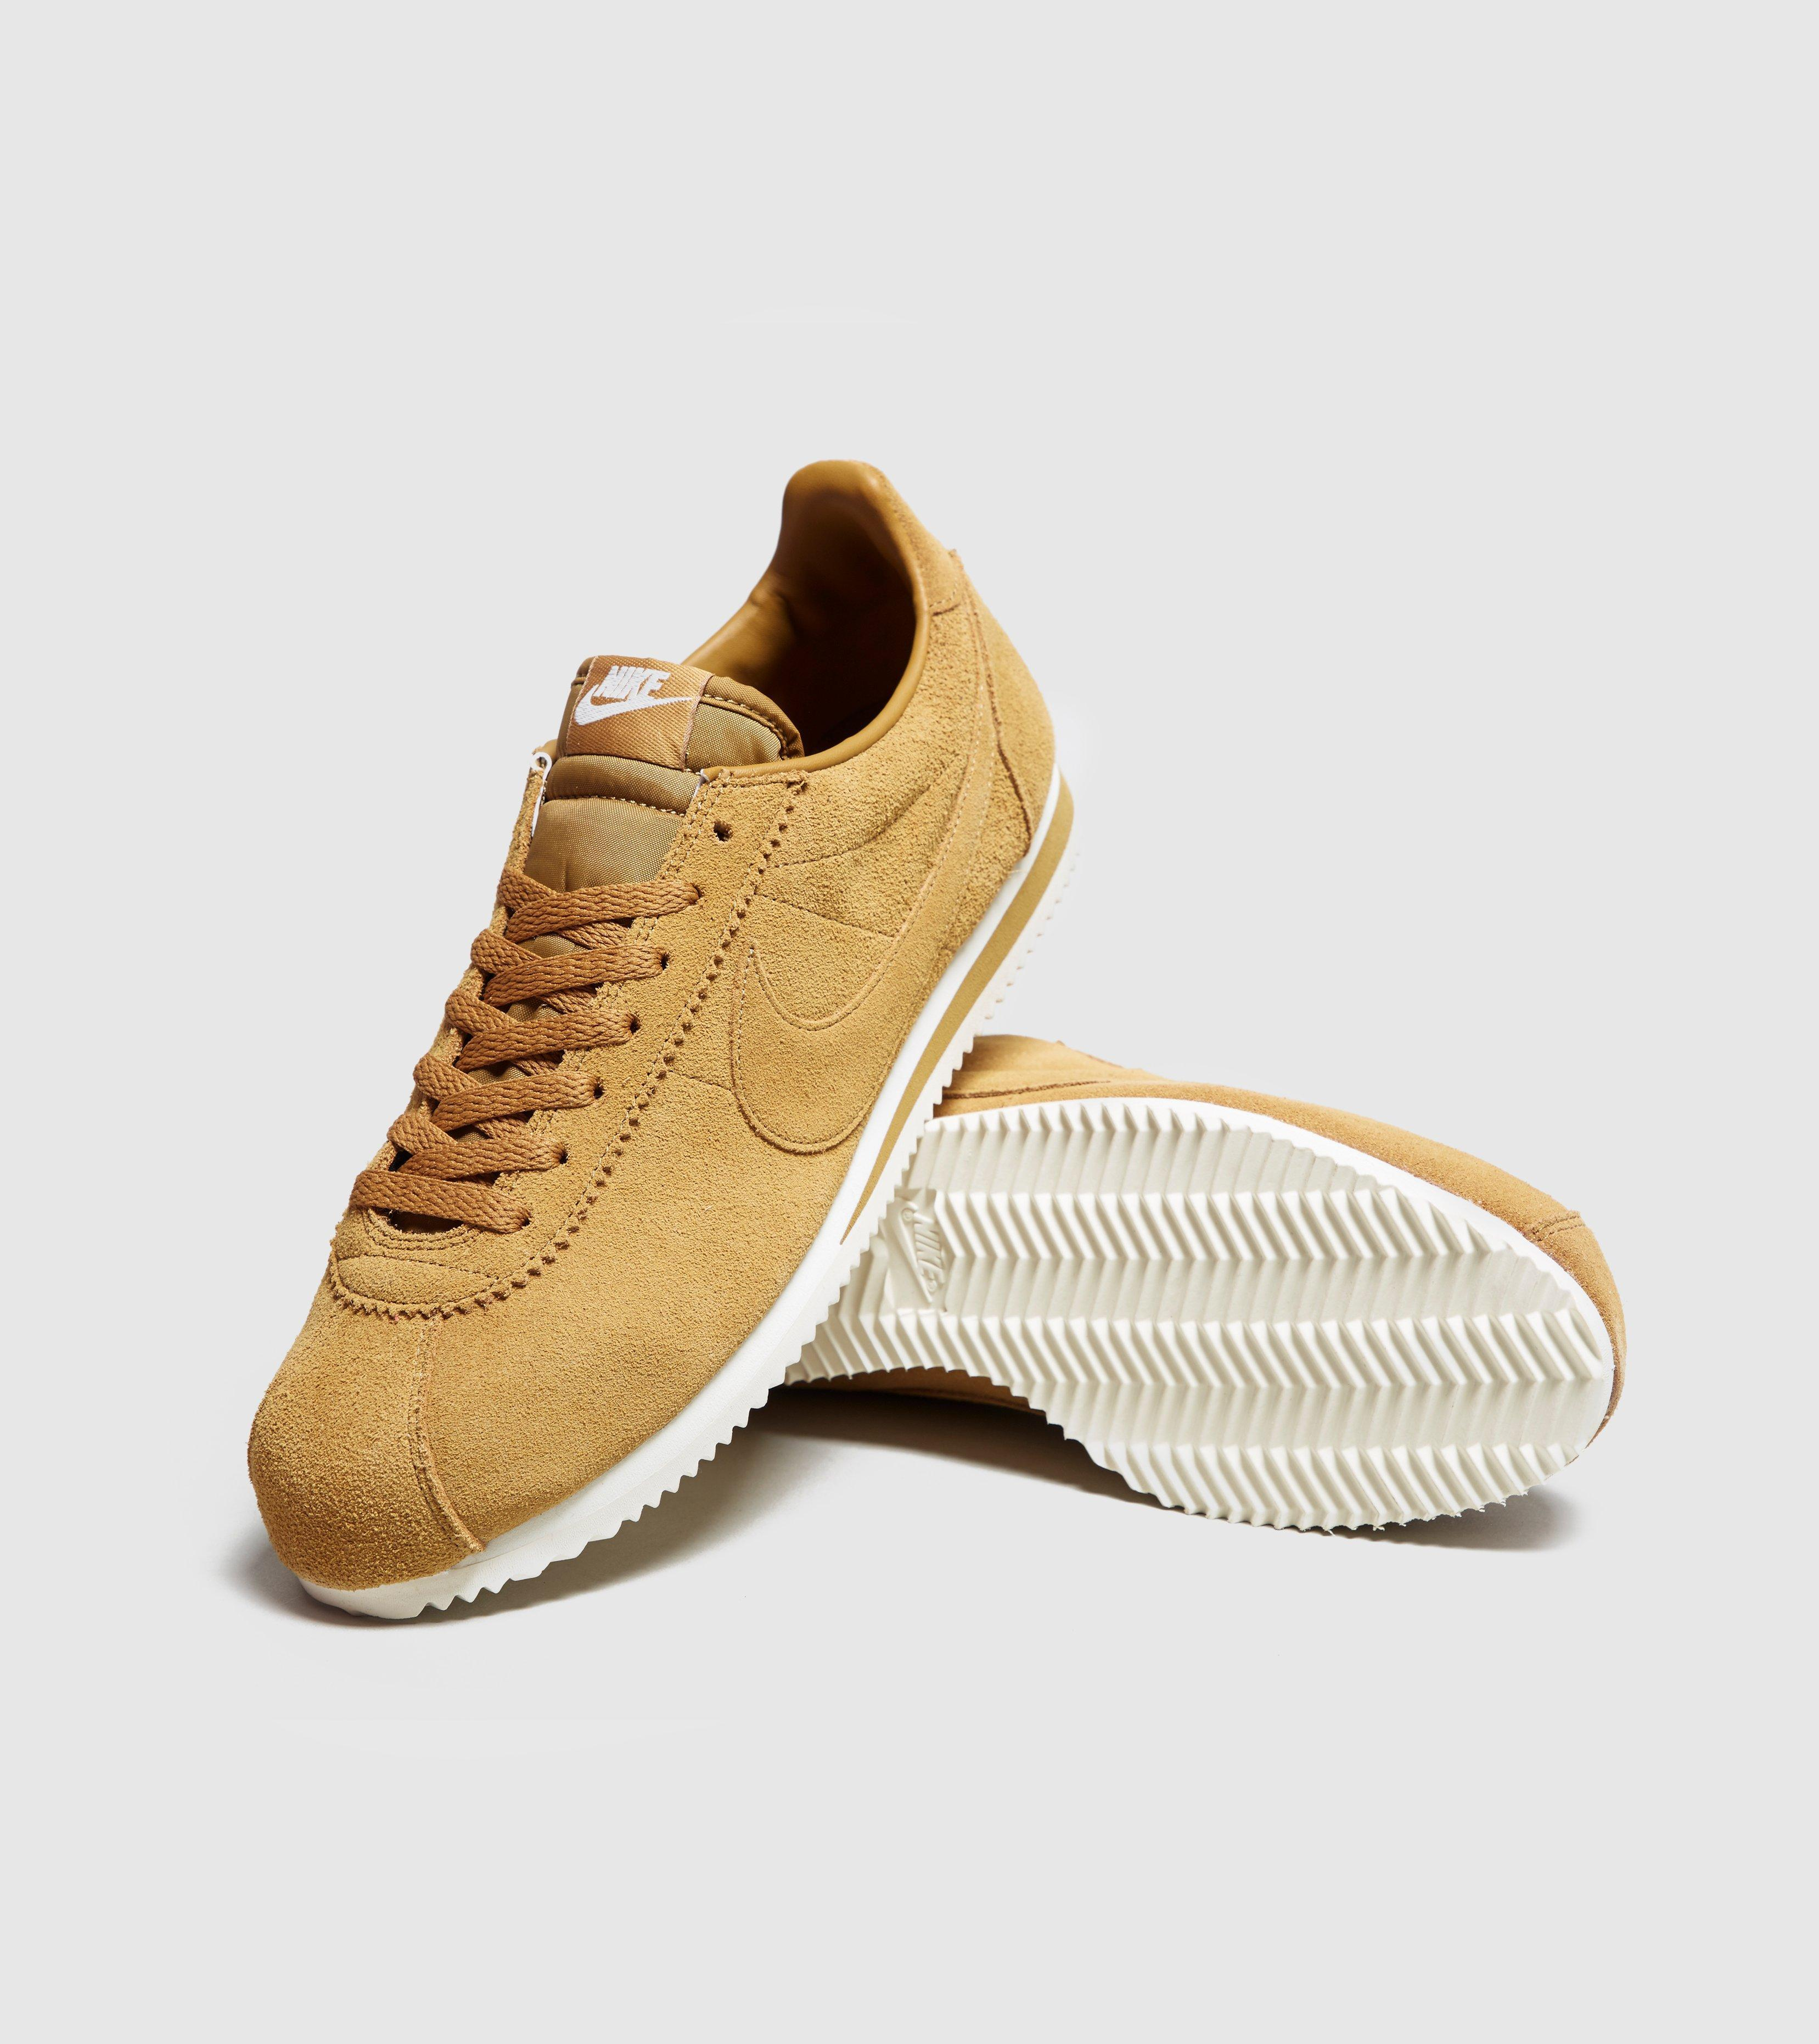 Lyst - Nike Cortez Suede in Natural for Men 7d13bcaa7